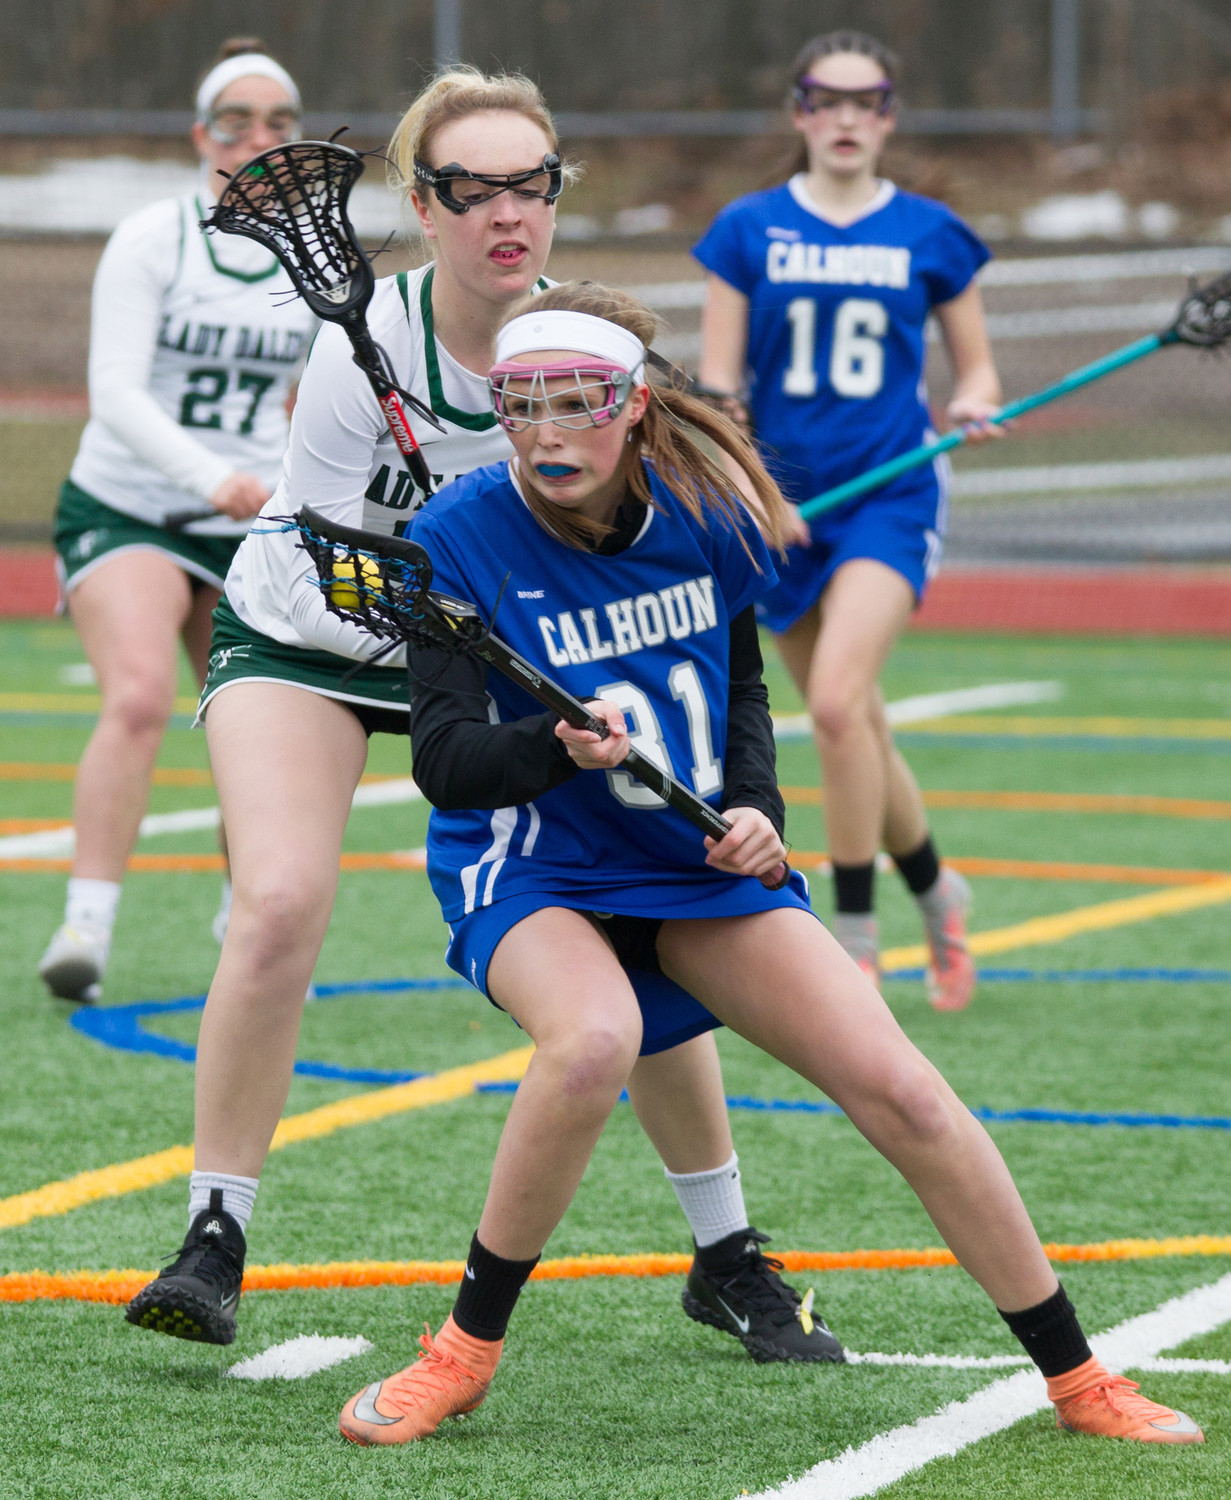 Freshman Riley Raines, No. 31, who scored three goals in a victory over East Meadow on April 4, is part of a youth-filled Lady Colts' roster.